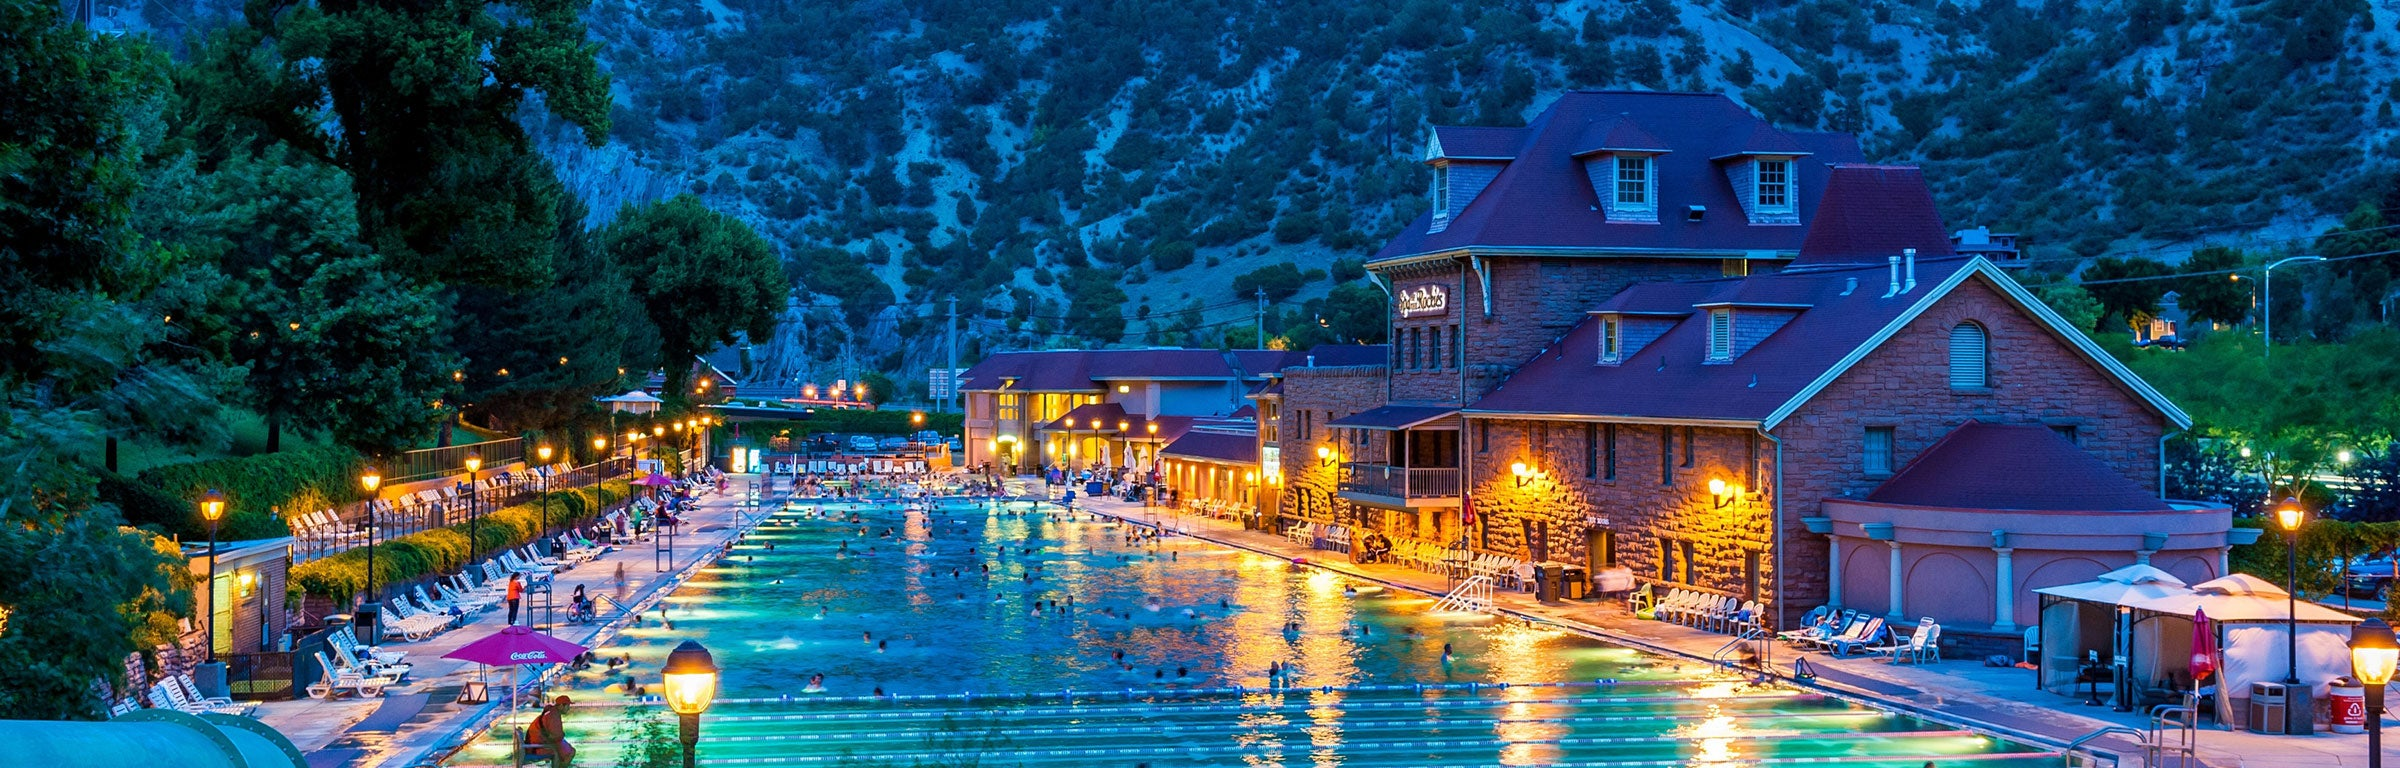 Glenwood Springs Community Photo